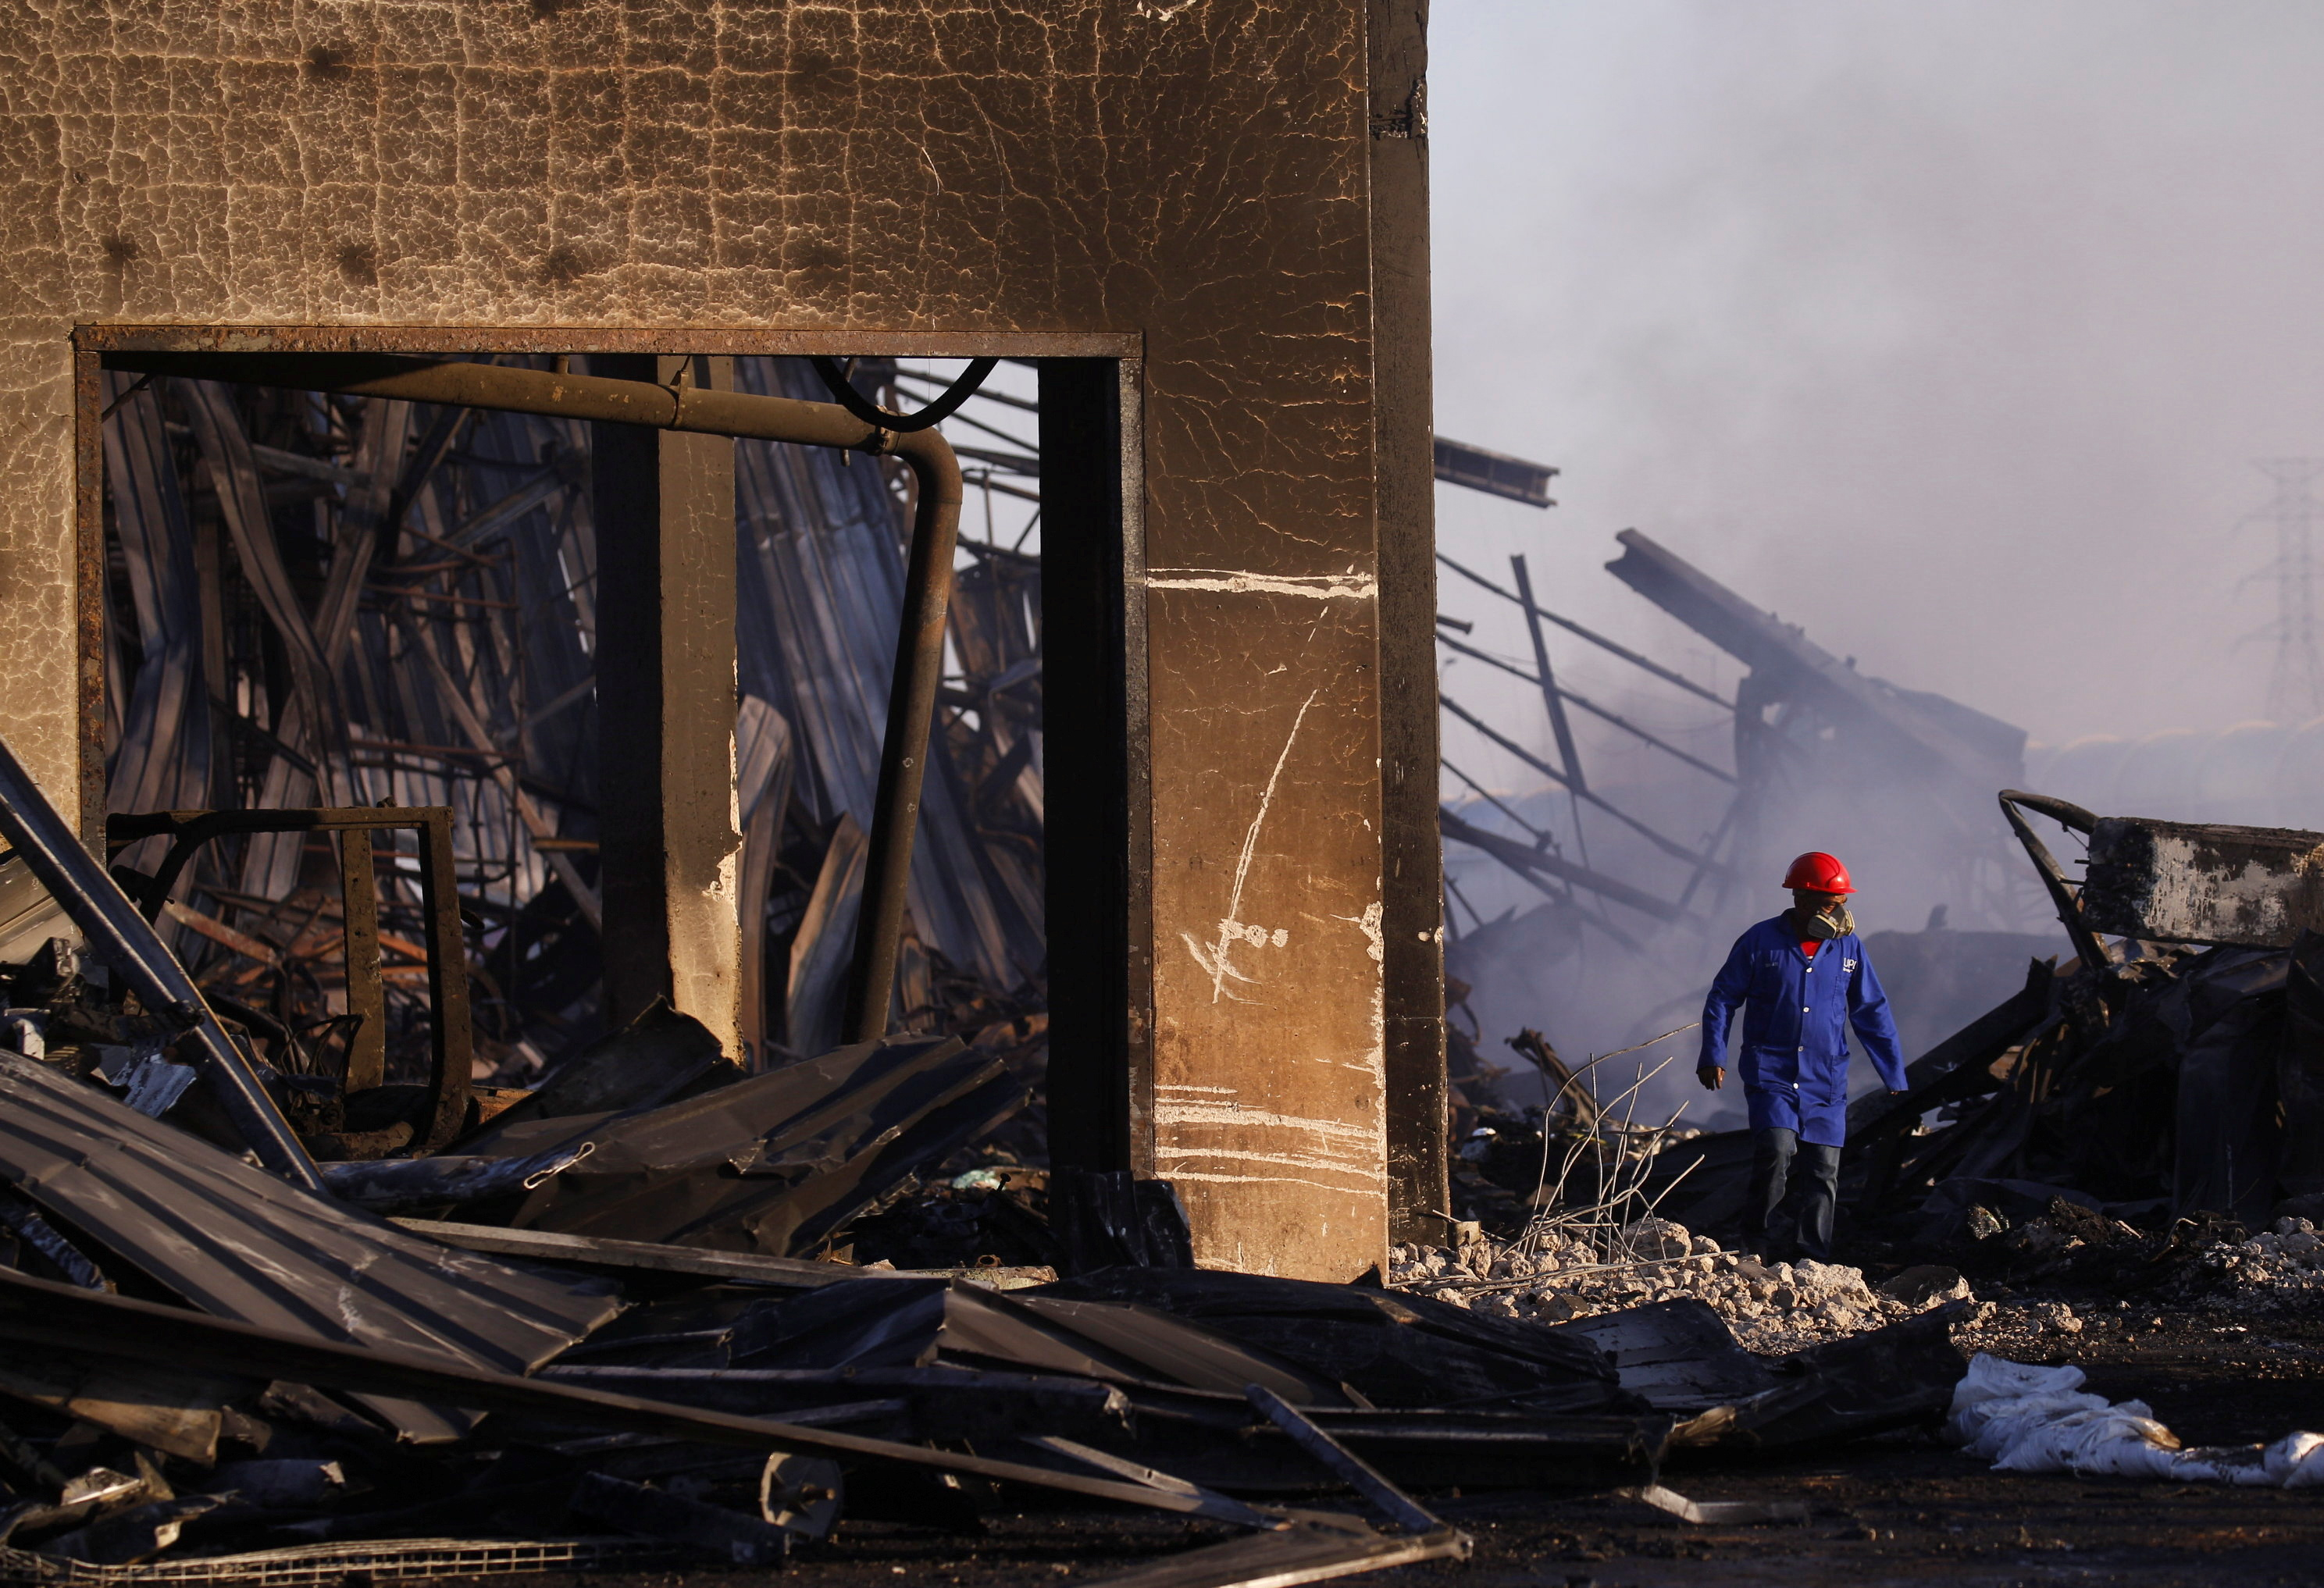 A man walks through the remnants of a warehouse which was burned during days of looting following the imprisonment of former South African President Jacob Zuma, in Durban, South Africa, July 17, 2021. REUTERS/Rogan Ward